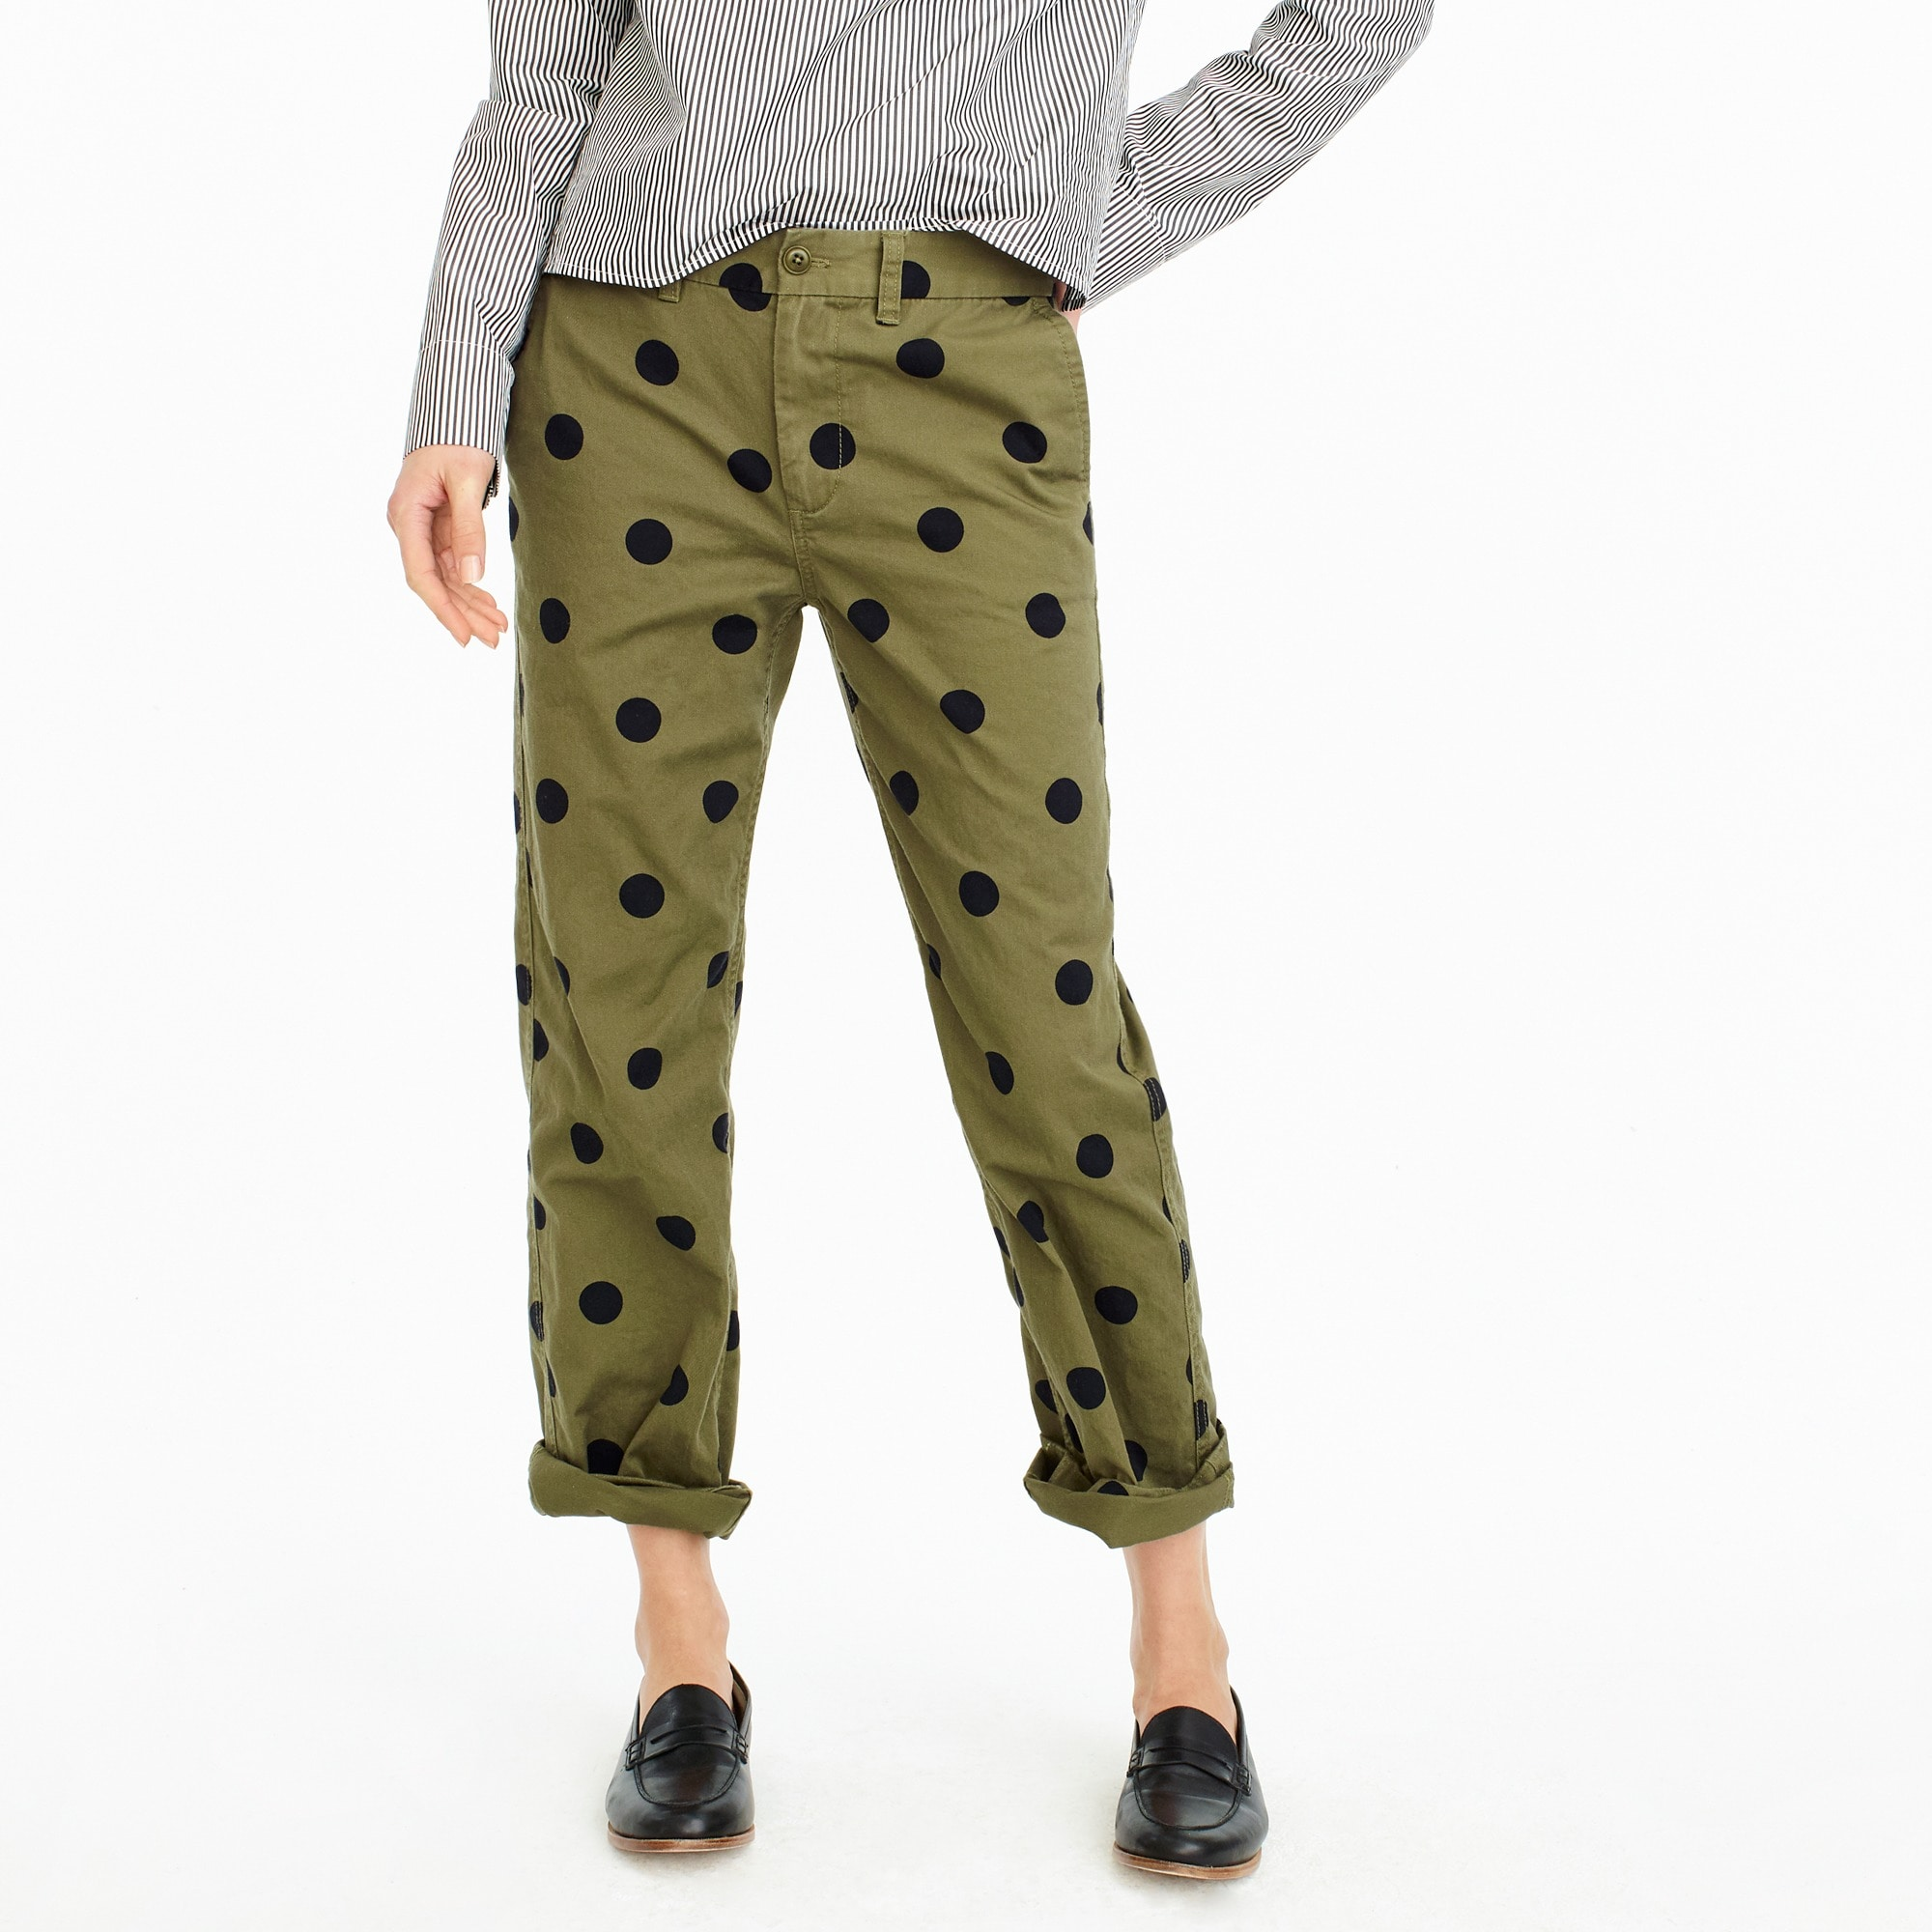 Image 1 for Tall boyfriend chino pant in polka dot